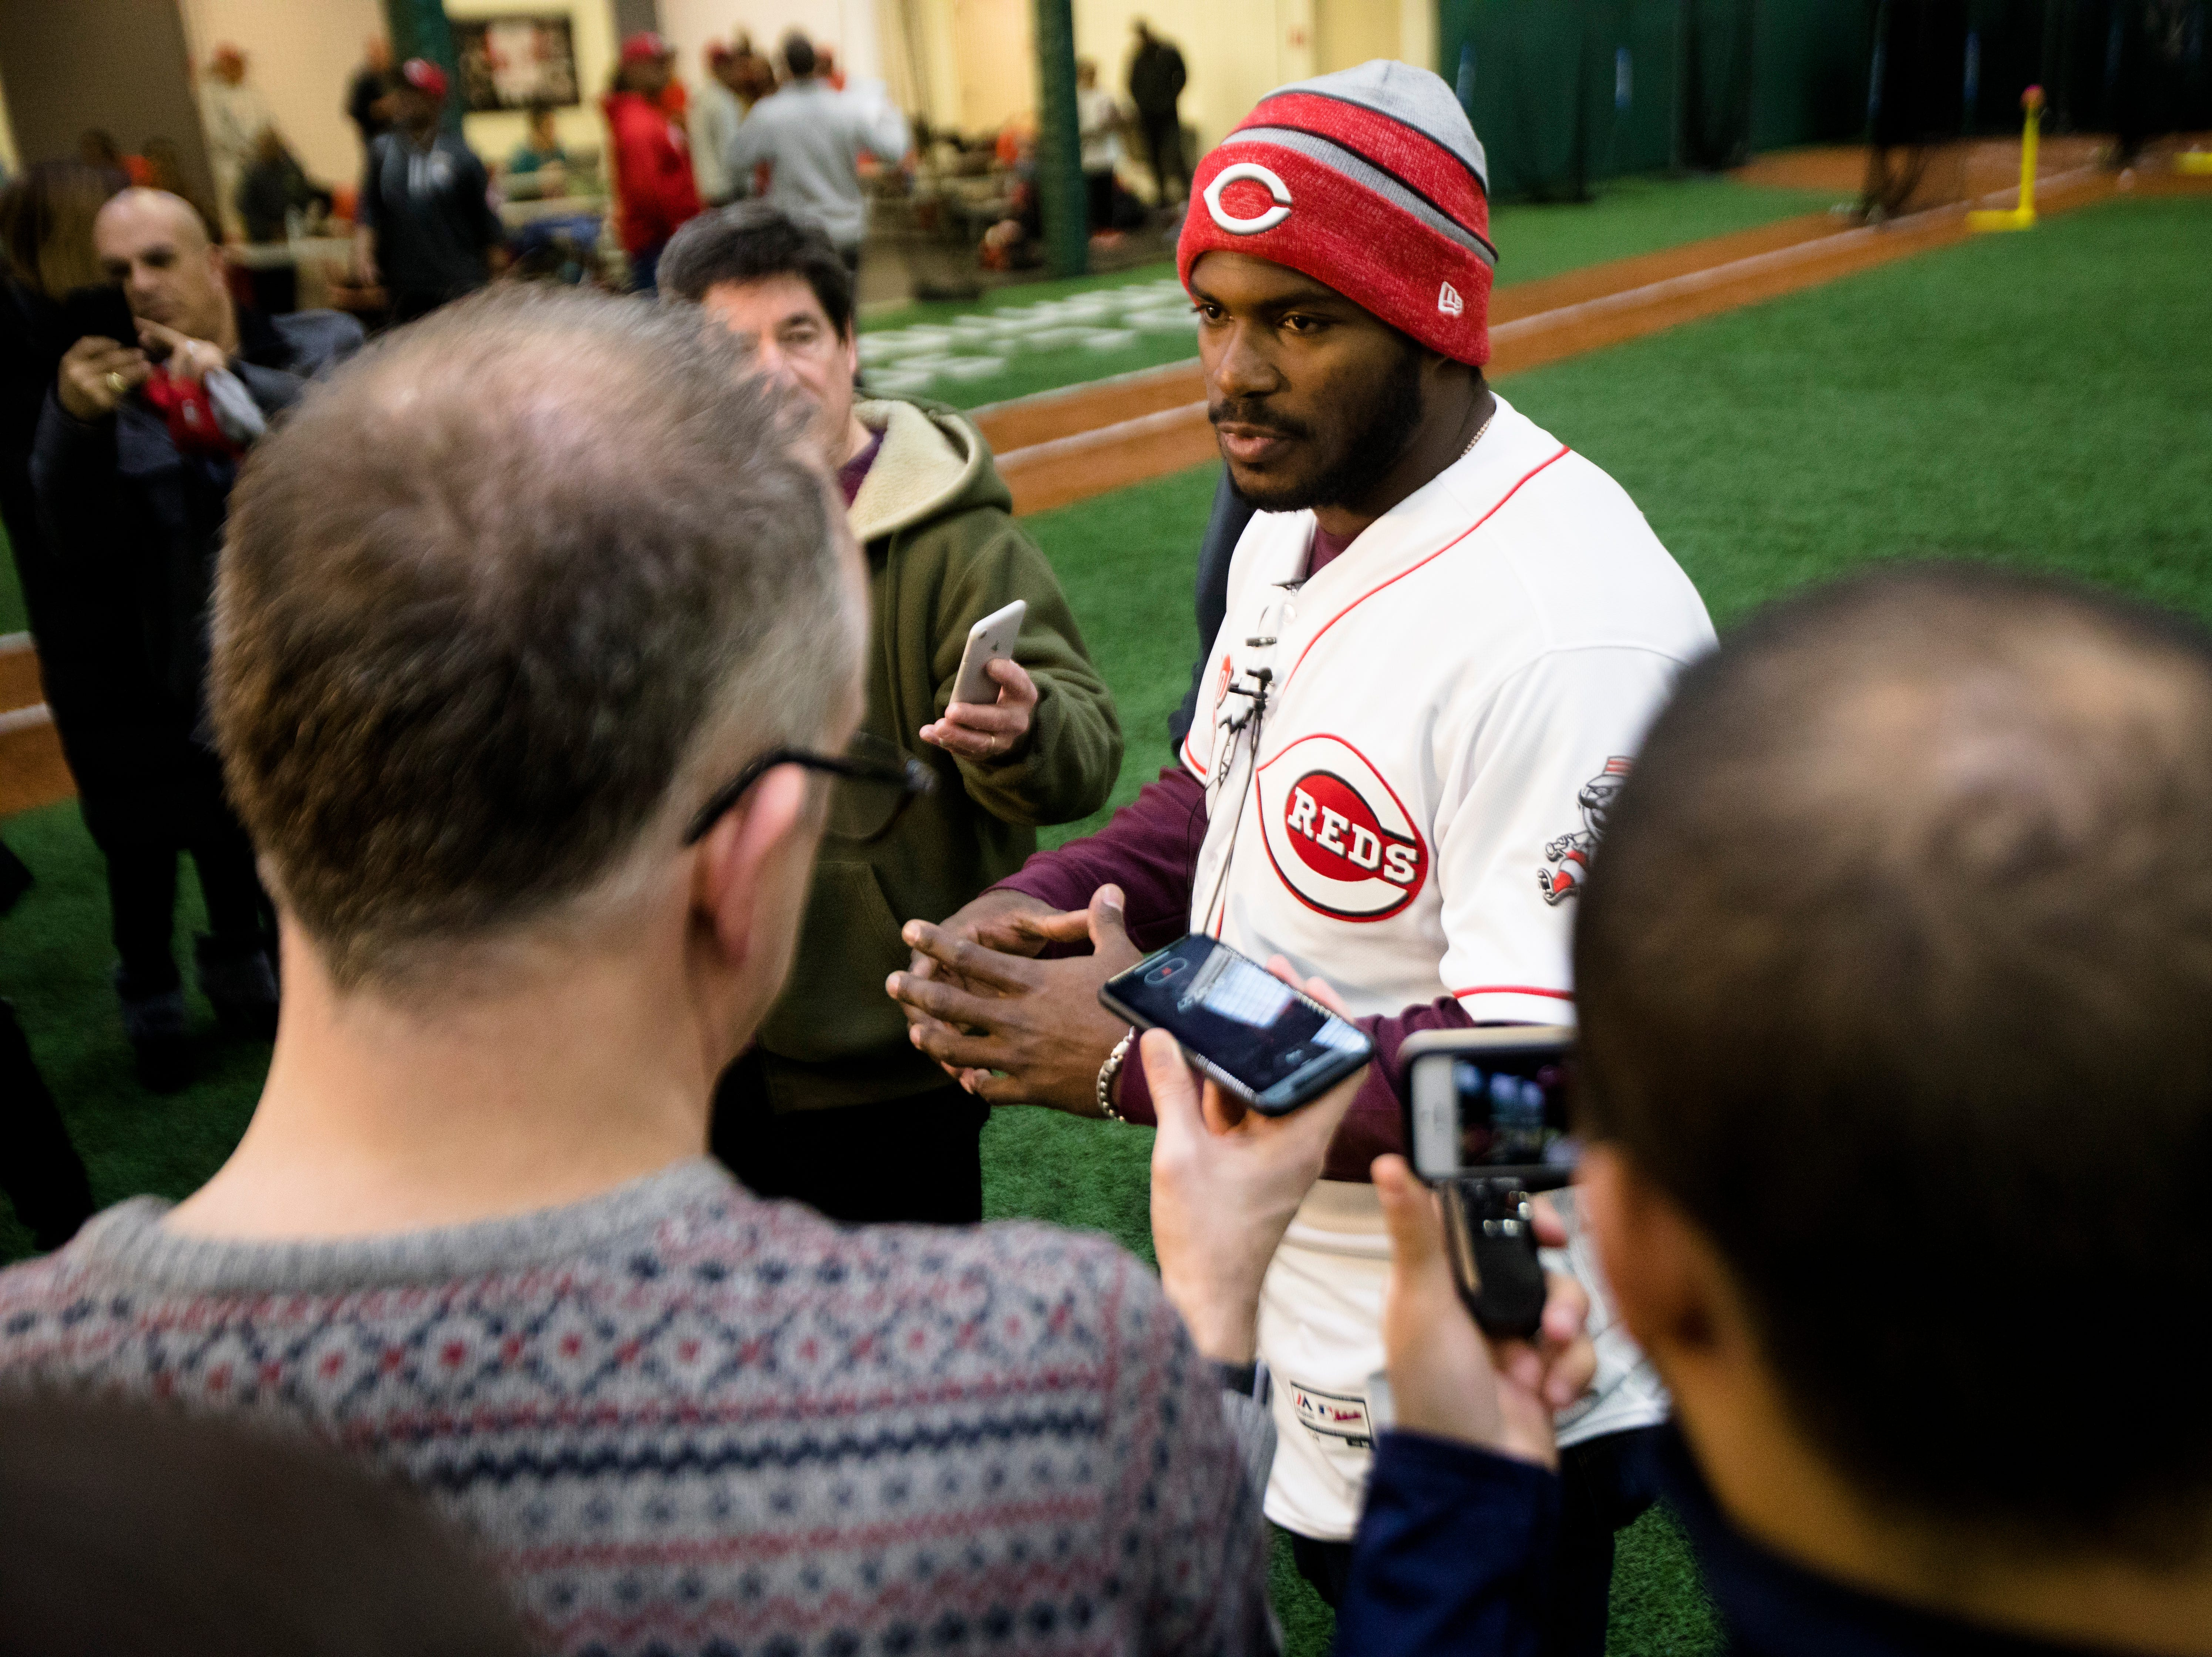 Yasiel Puig, who has been traded to the Cincinnati Reds from the LA Dodgers, speaks to members of the media at the P&G MLB Cincinnati Reds Youth Academy on Wednesday, Jan. 30, 2019.